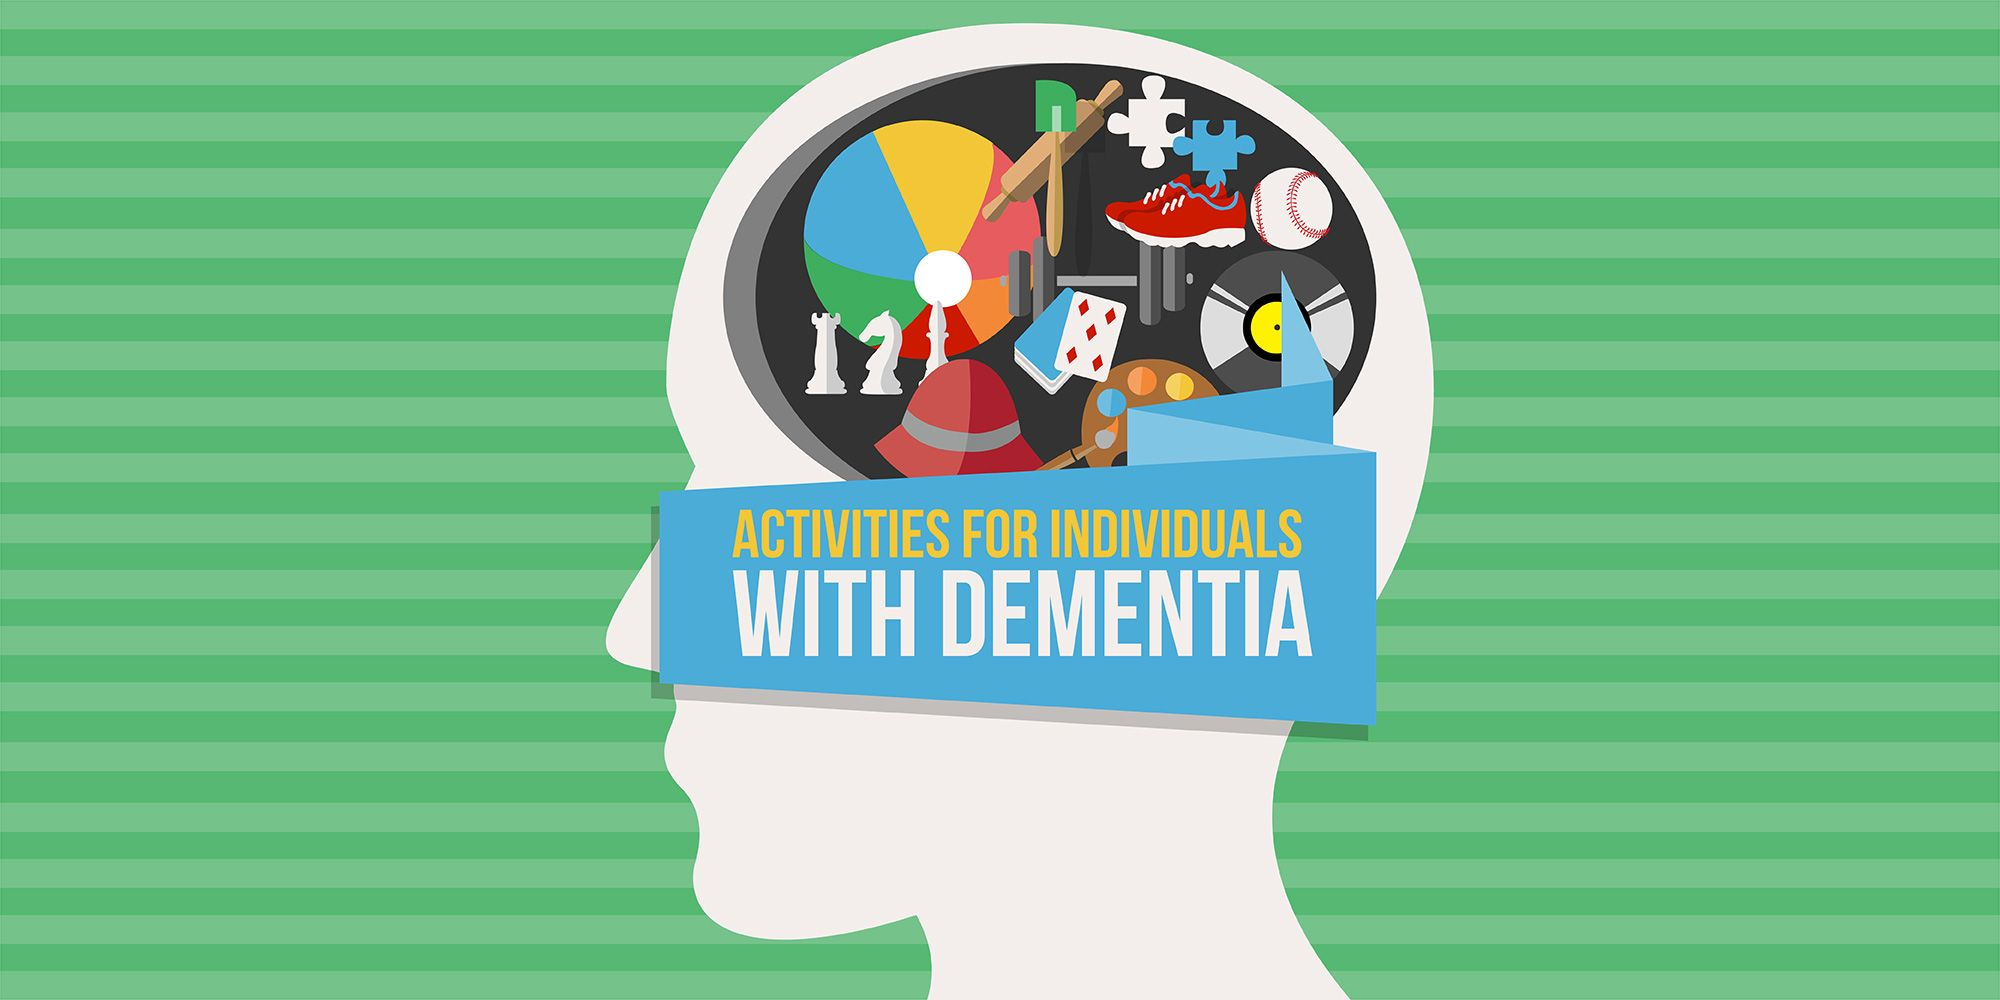 Activities For Individuals With Dementia